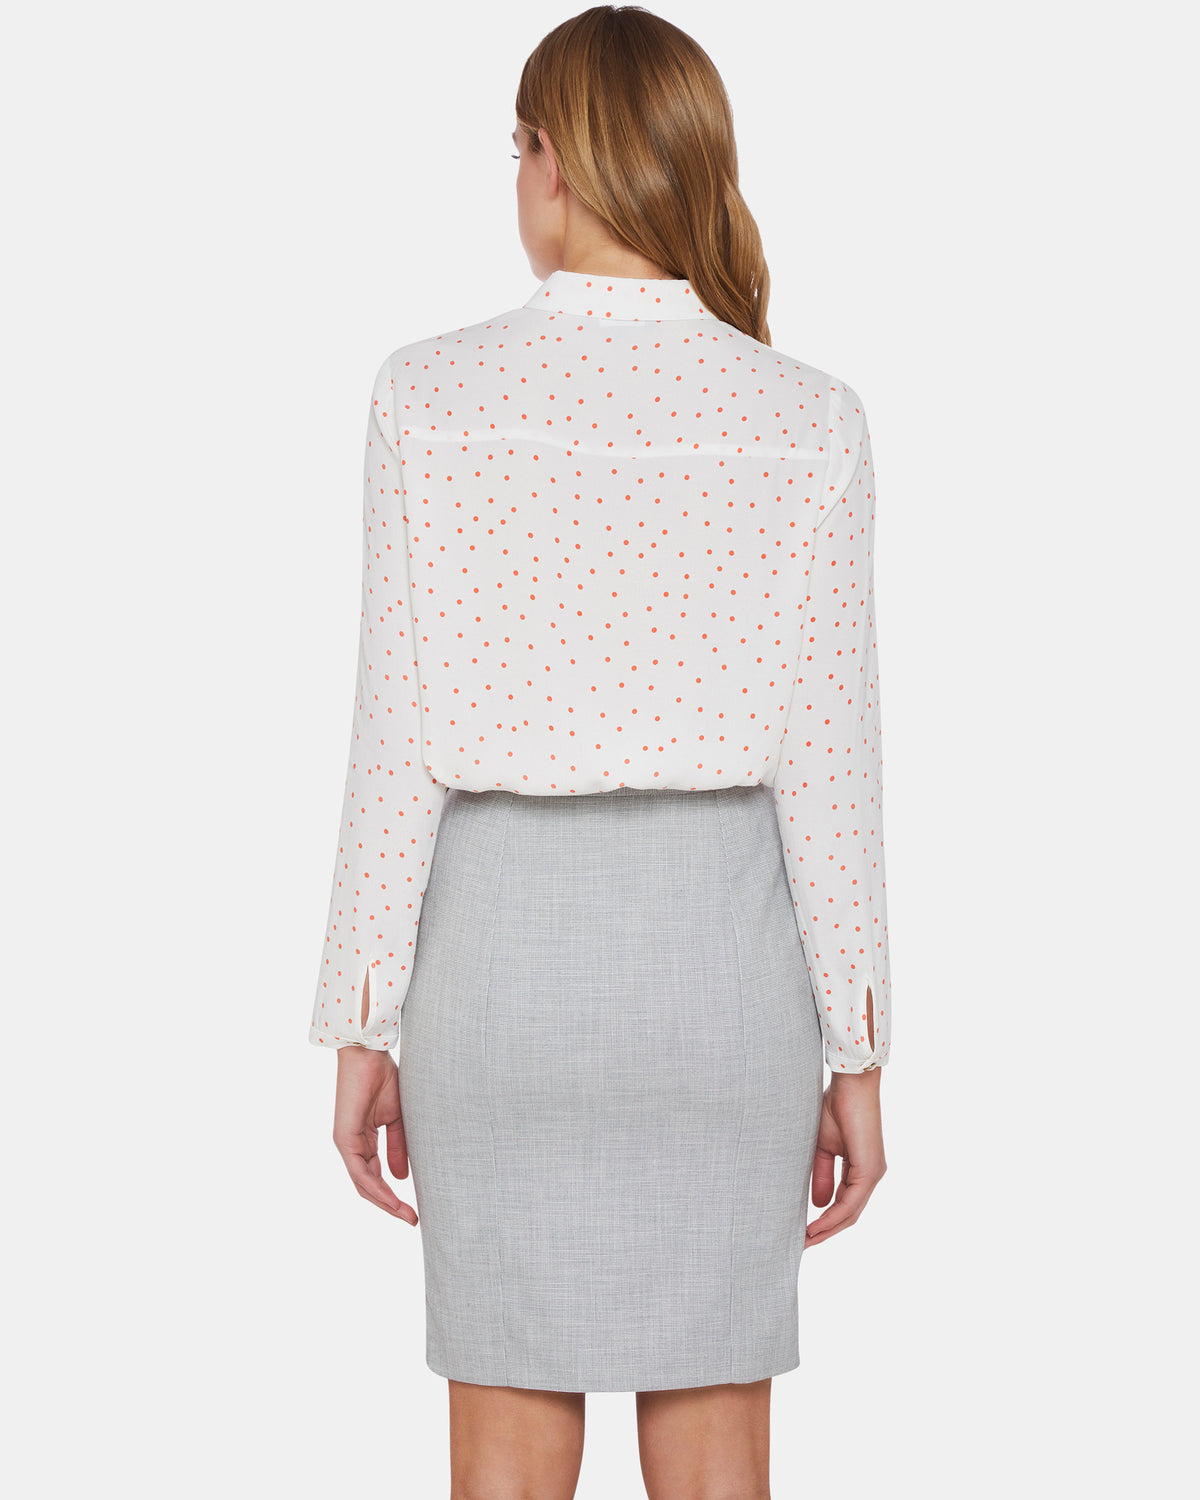 POPPY POLKA DOT BLOUSE